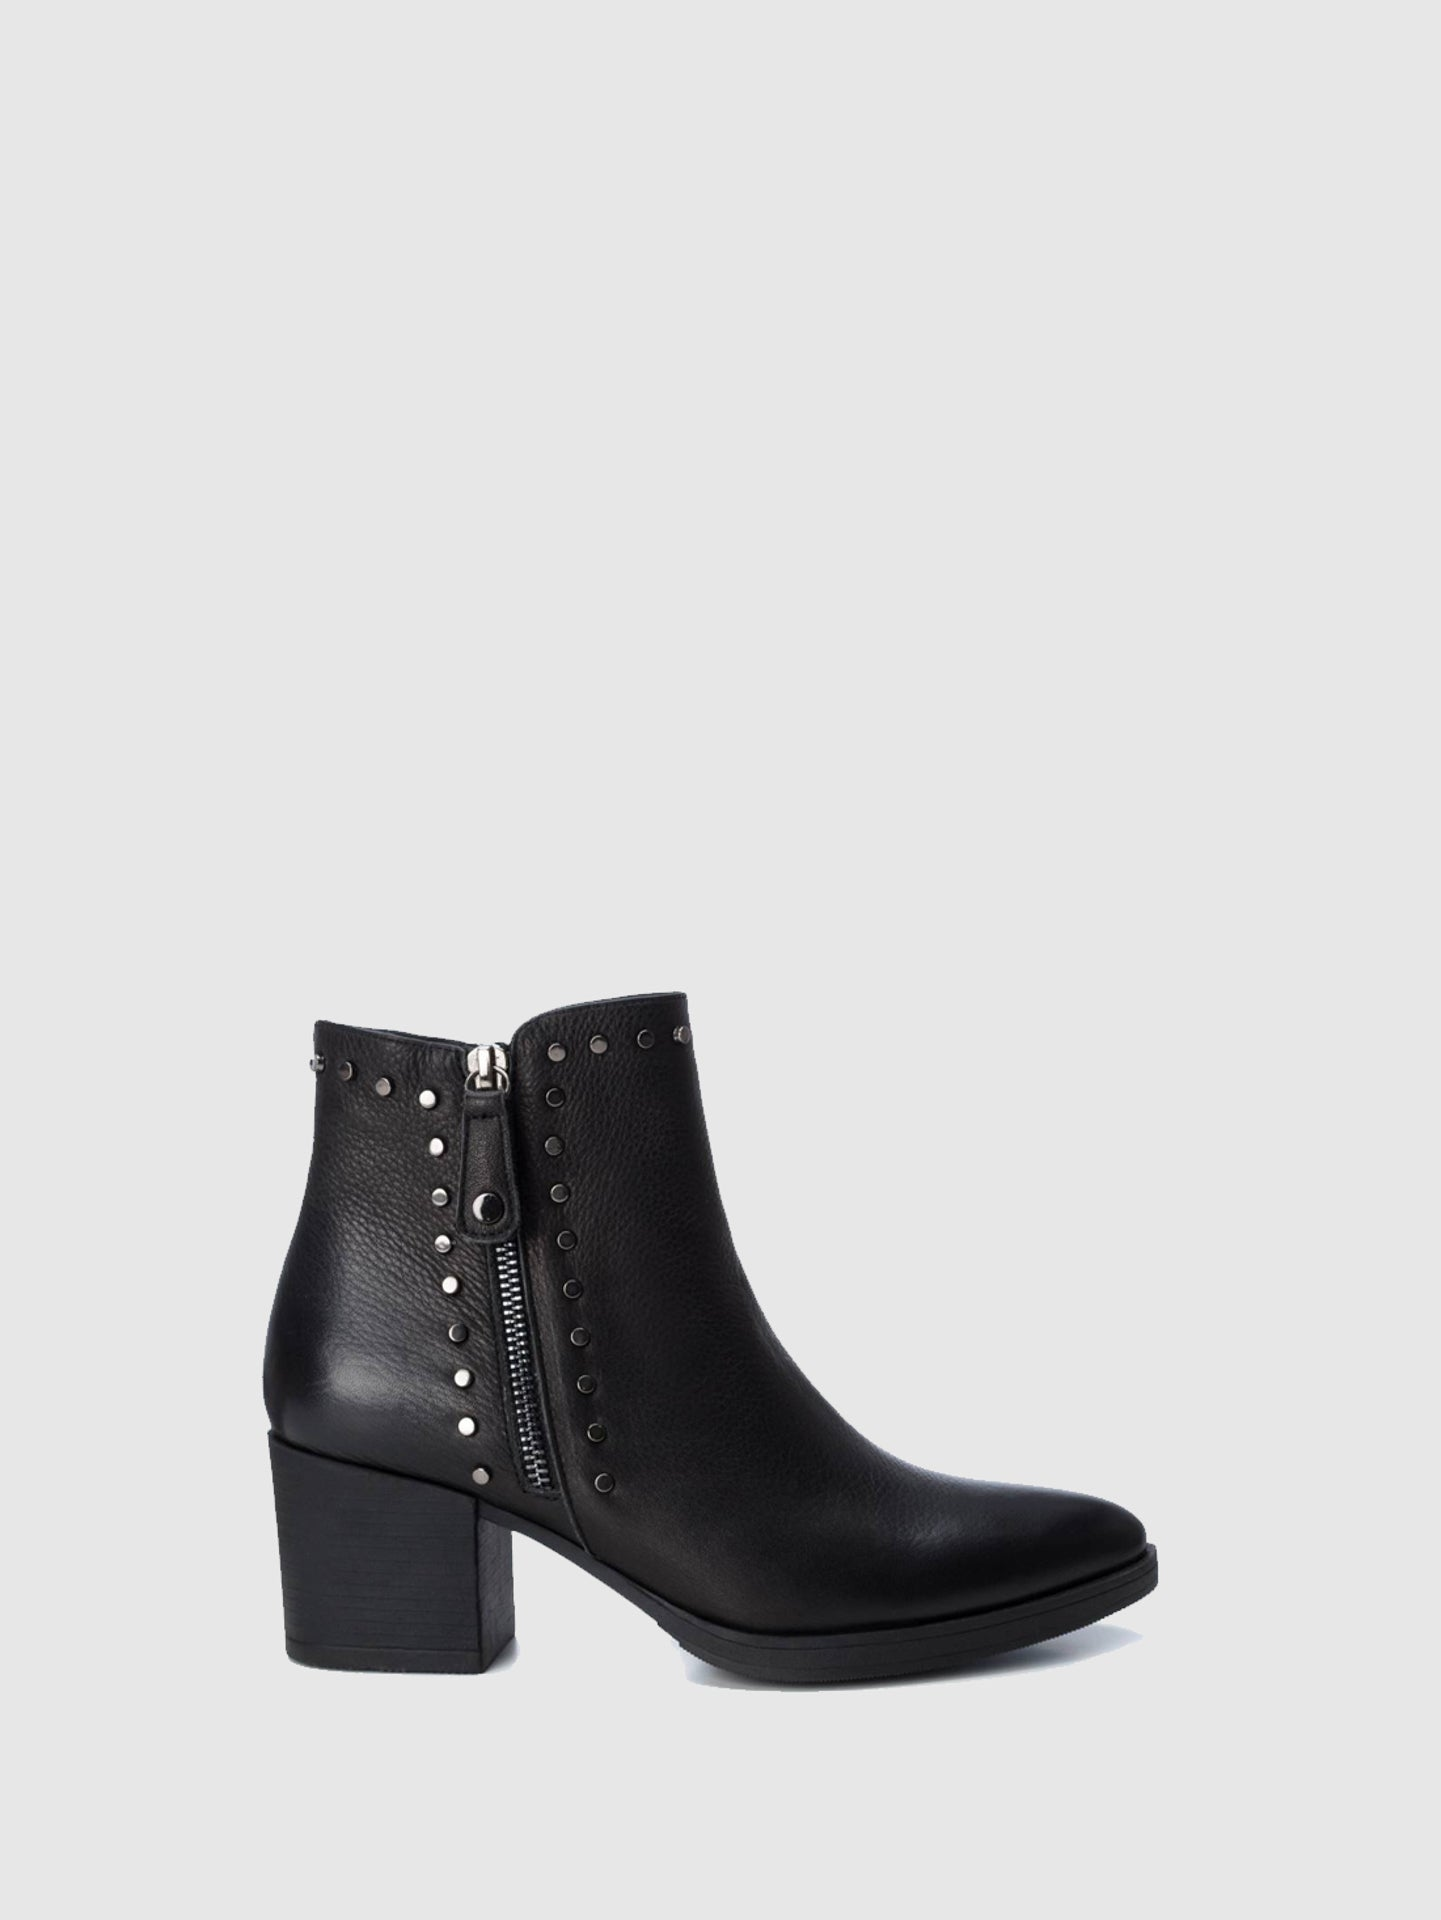 Carmela Black Pointed Toe Ankle Boots